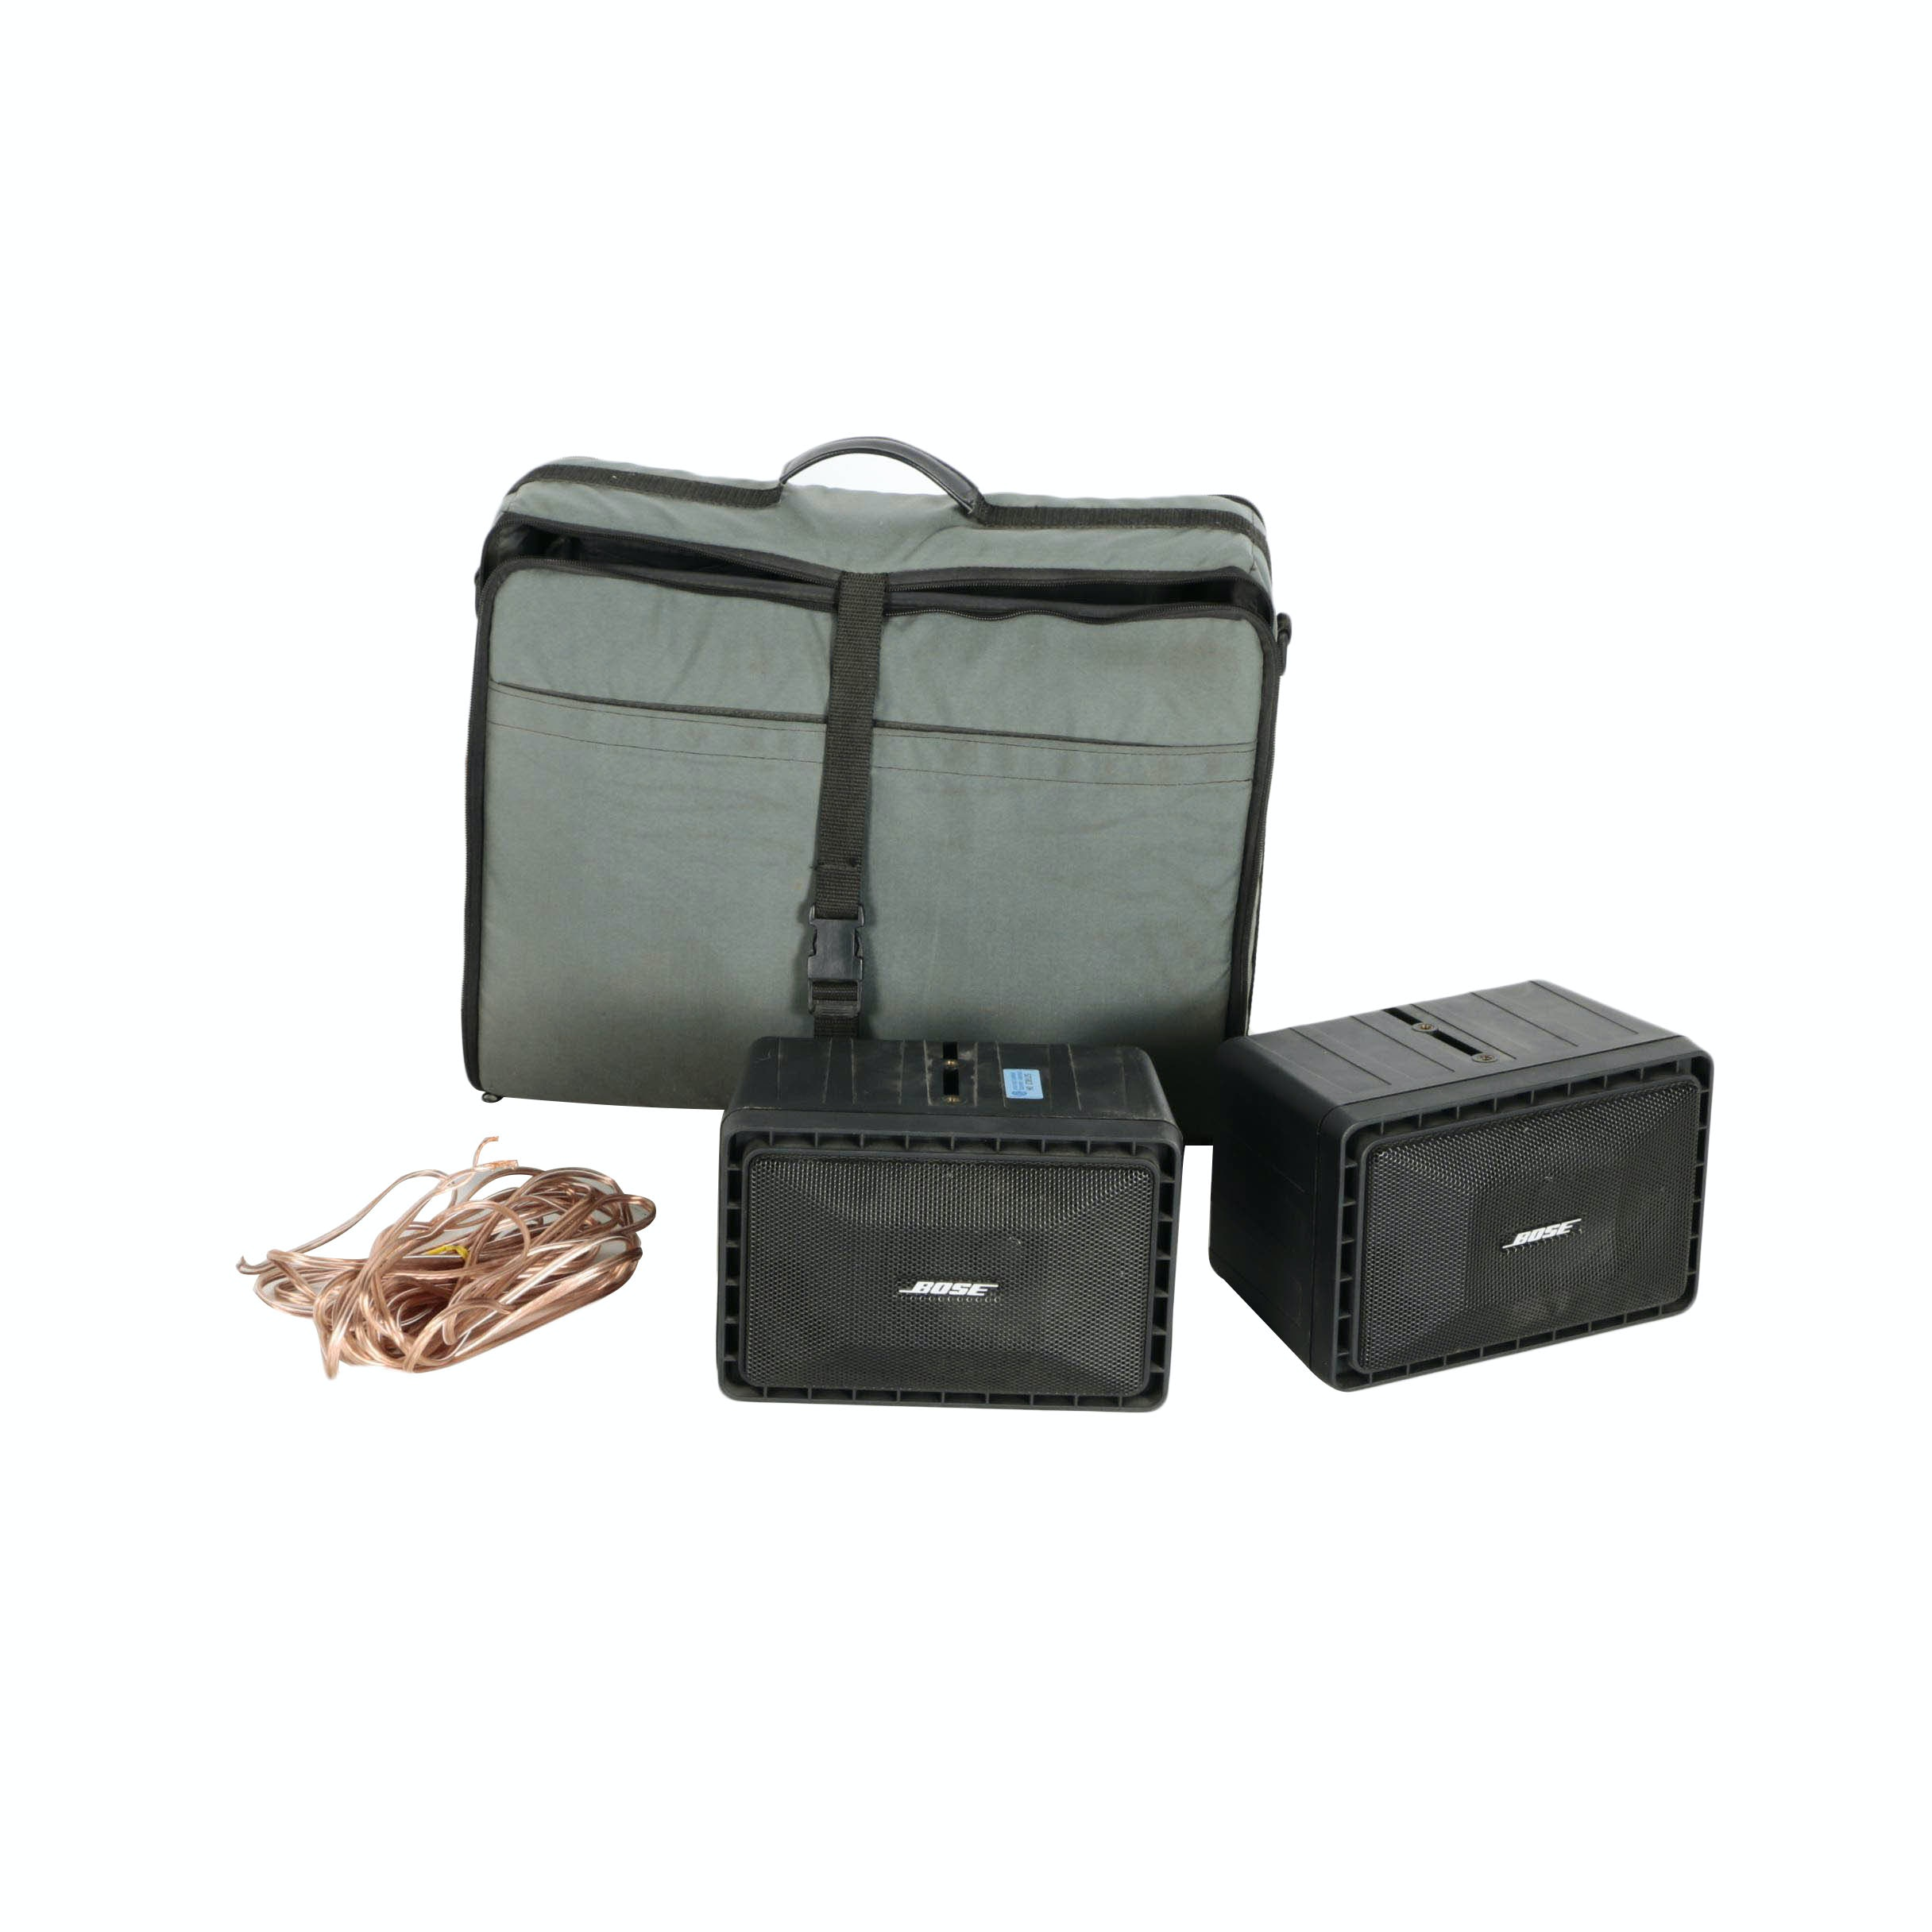 Pair of Bose Speakers and Carrying Bag